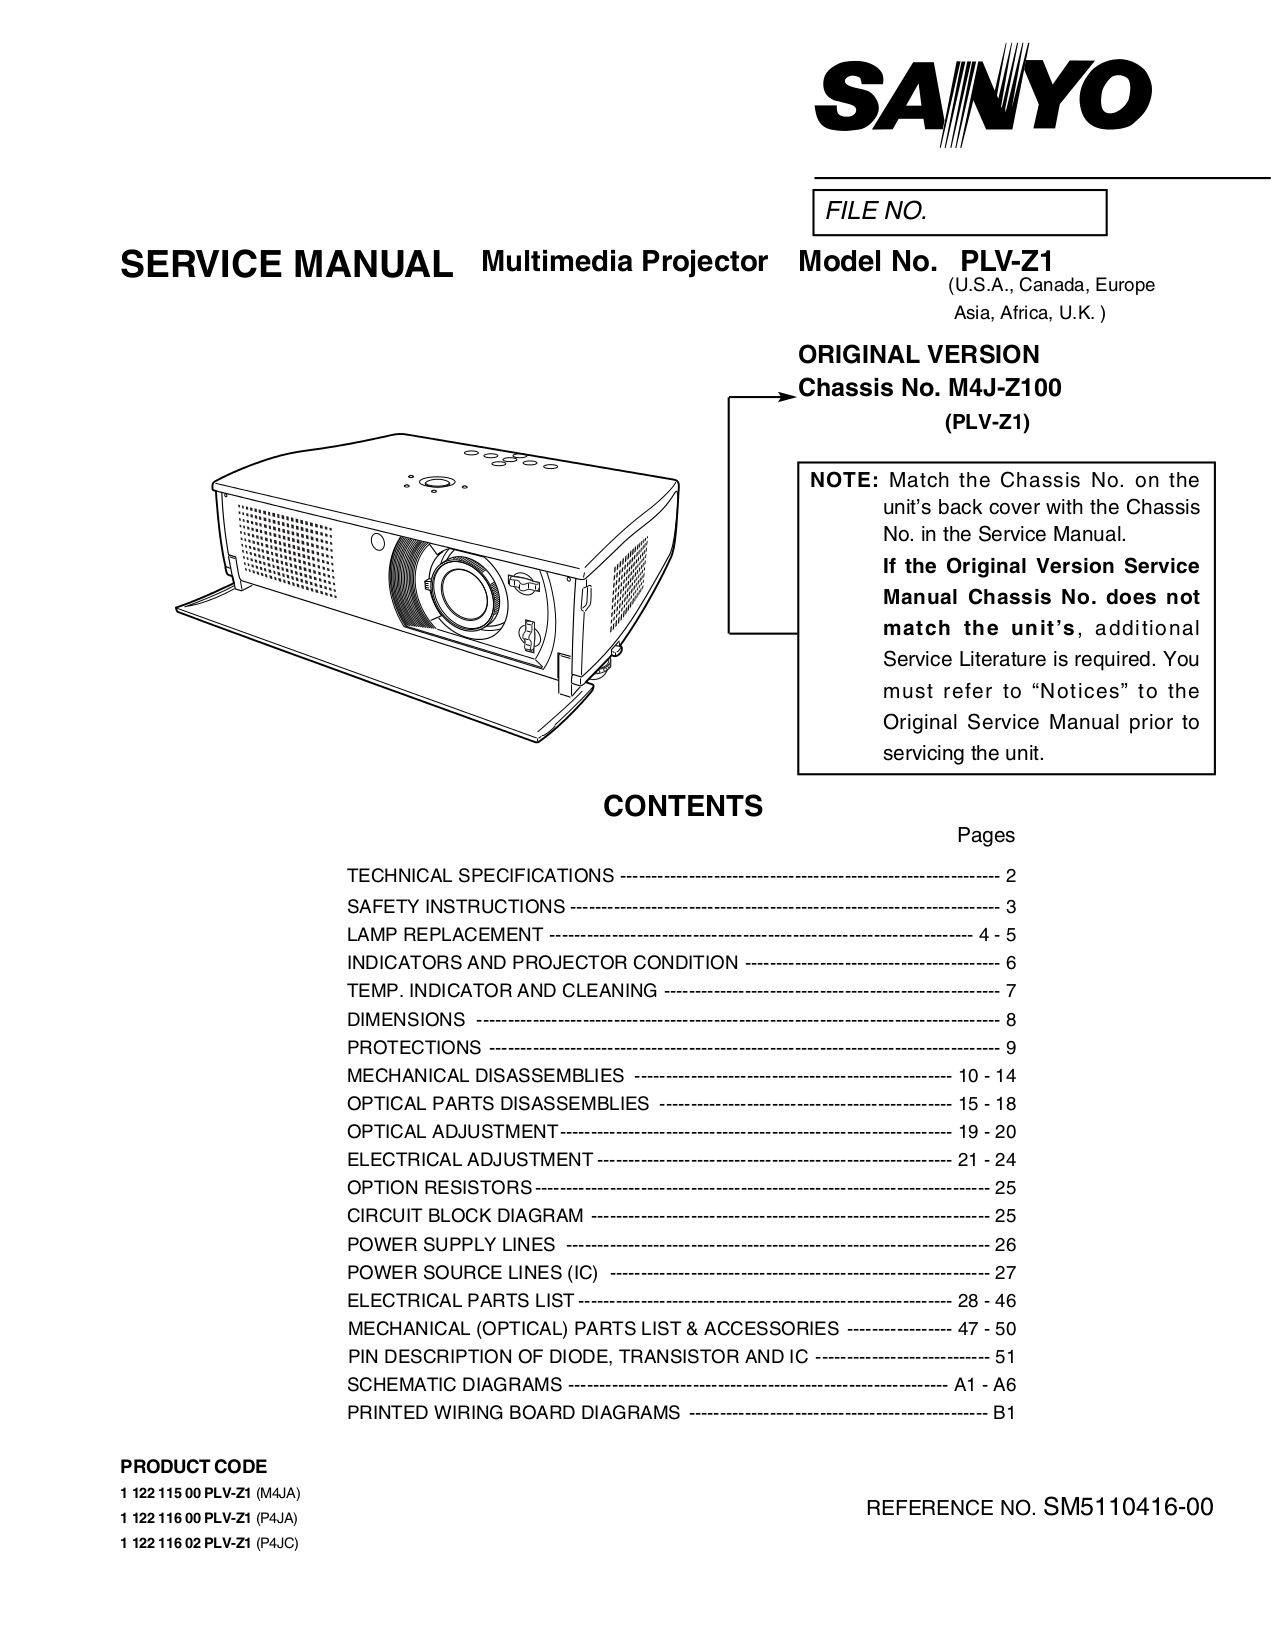 Dell manual e6500 ebook pdf for sanyo projector plv z1 manual fandeluxe Images